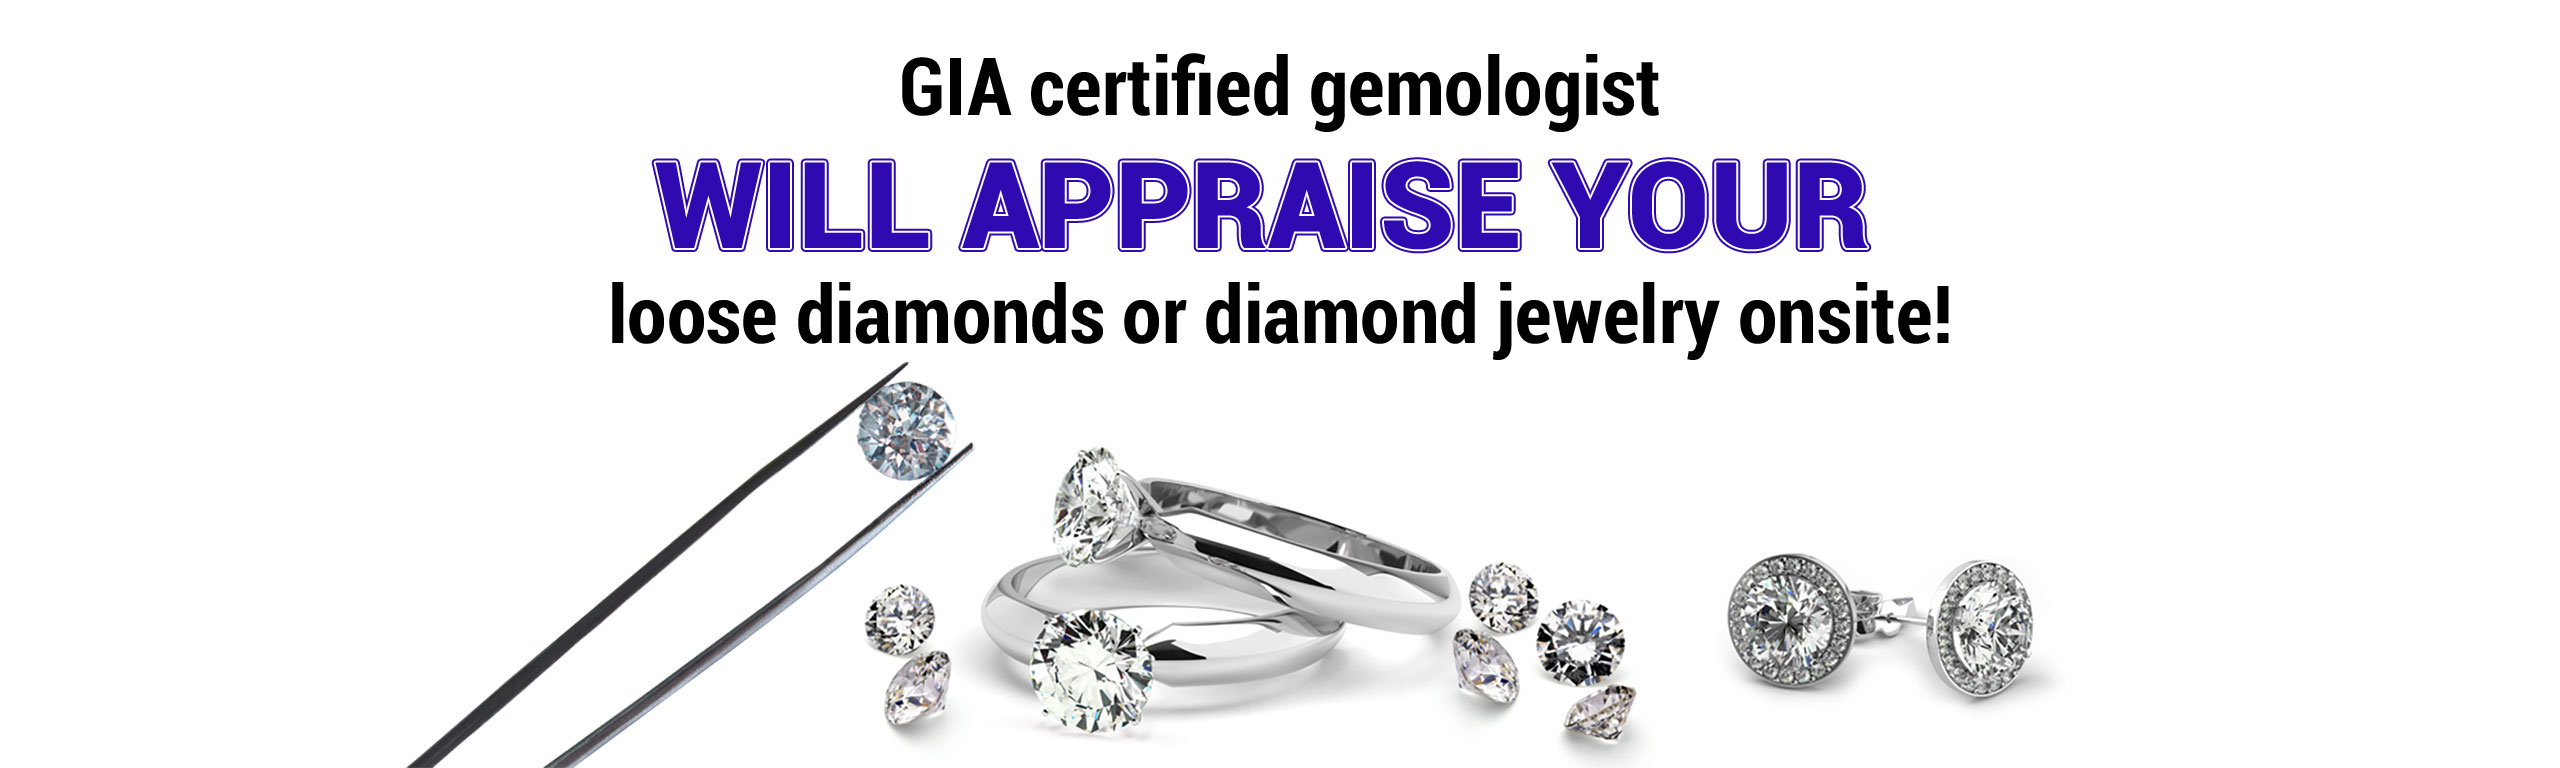 Certified Gemologist will appraise your diamonds or jewelry on site